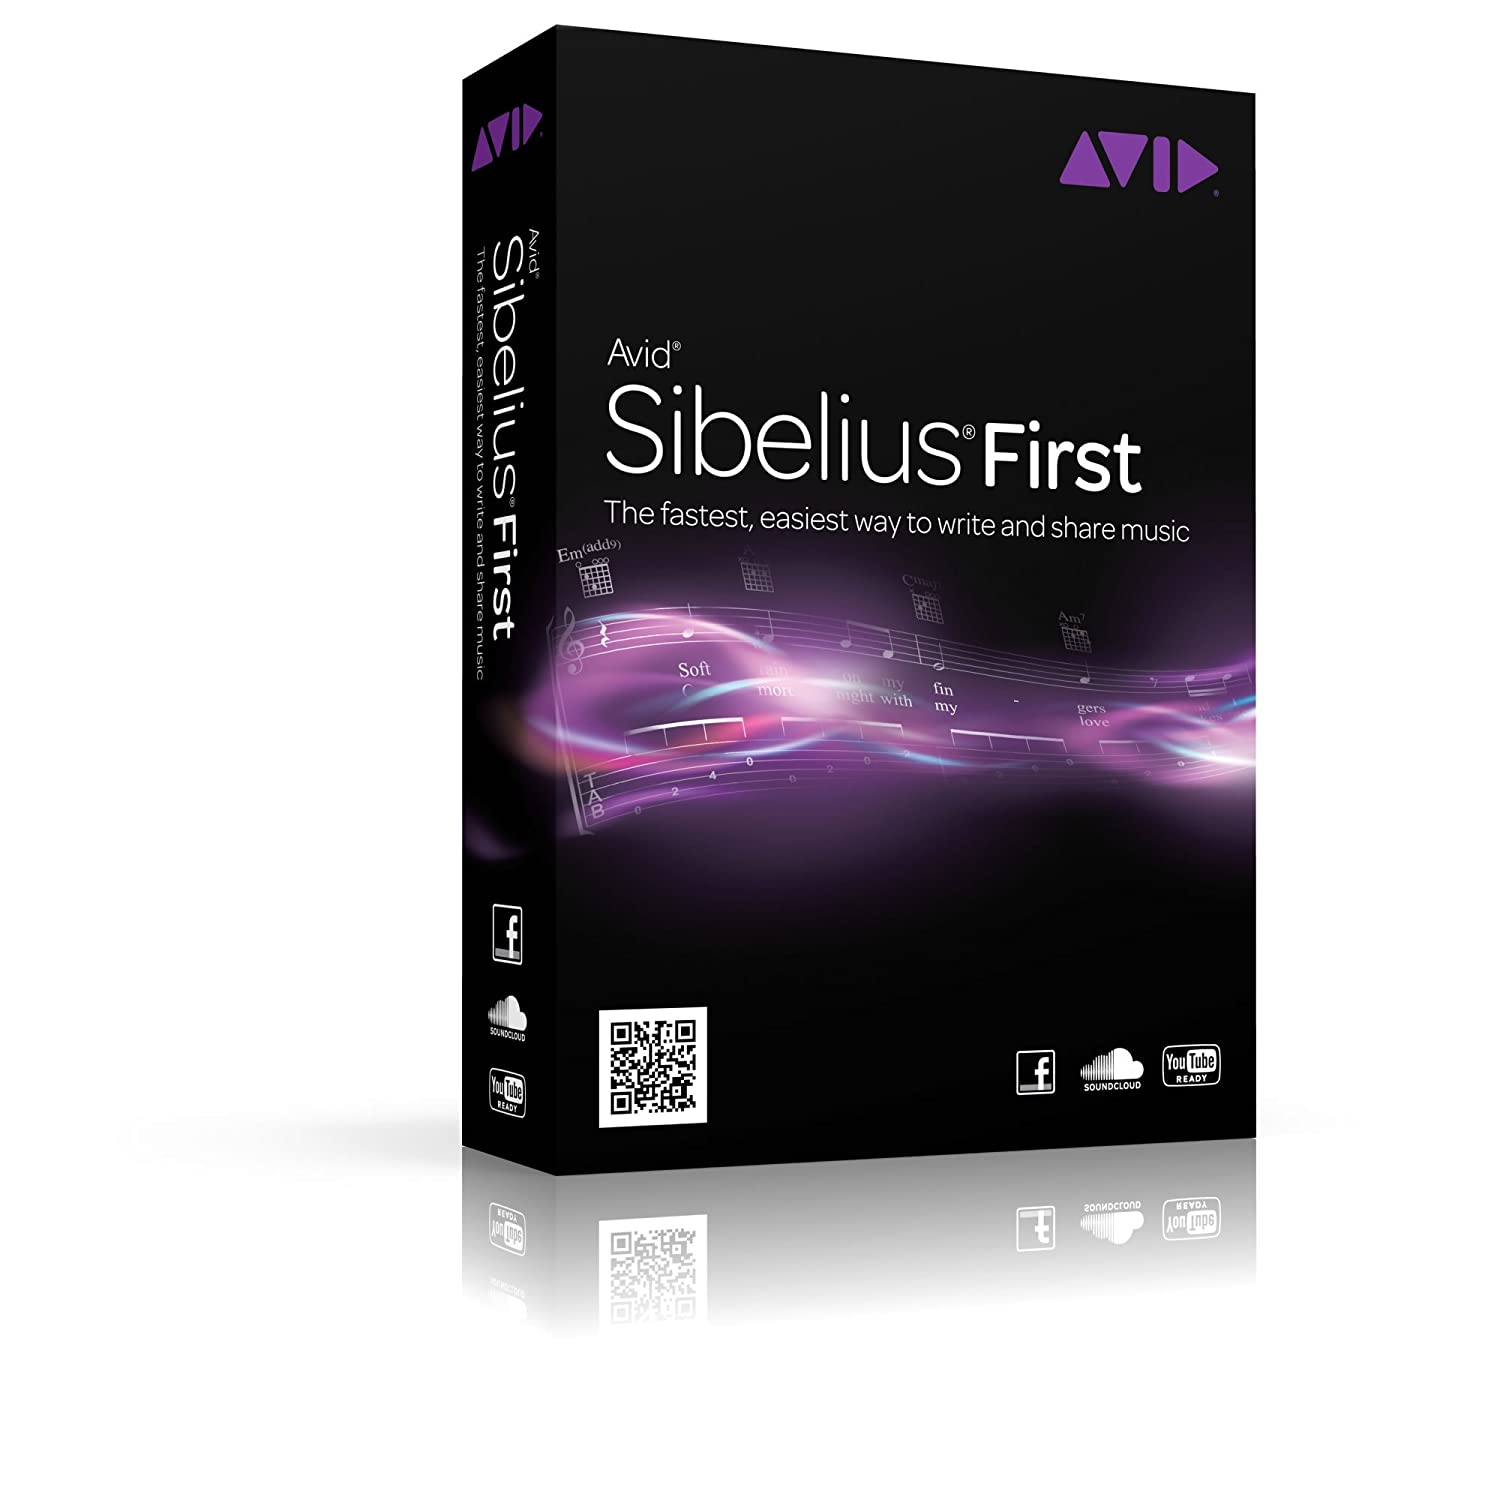 Sibelius First 7 Avid Software 9900-65251-00